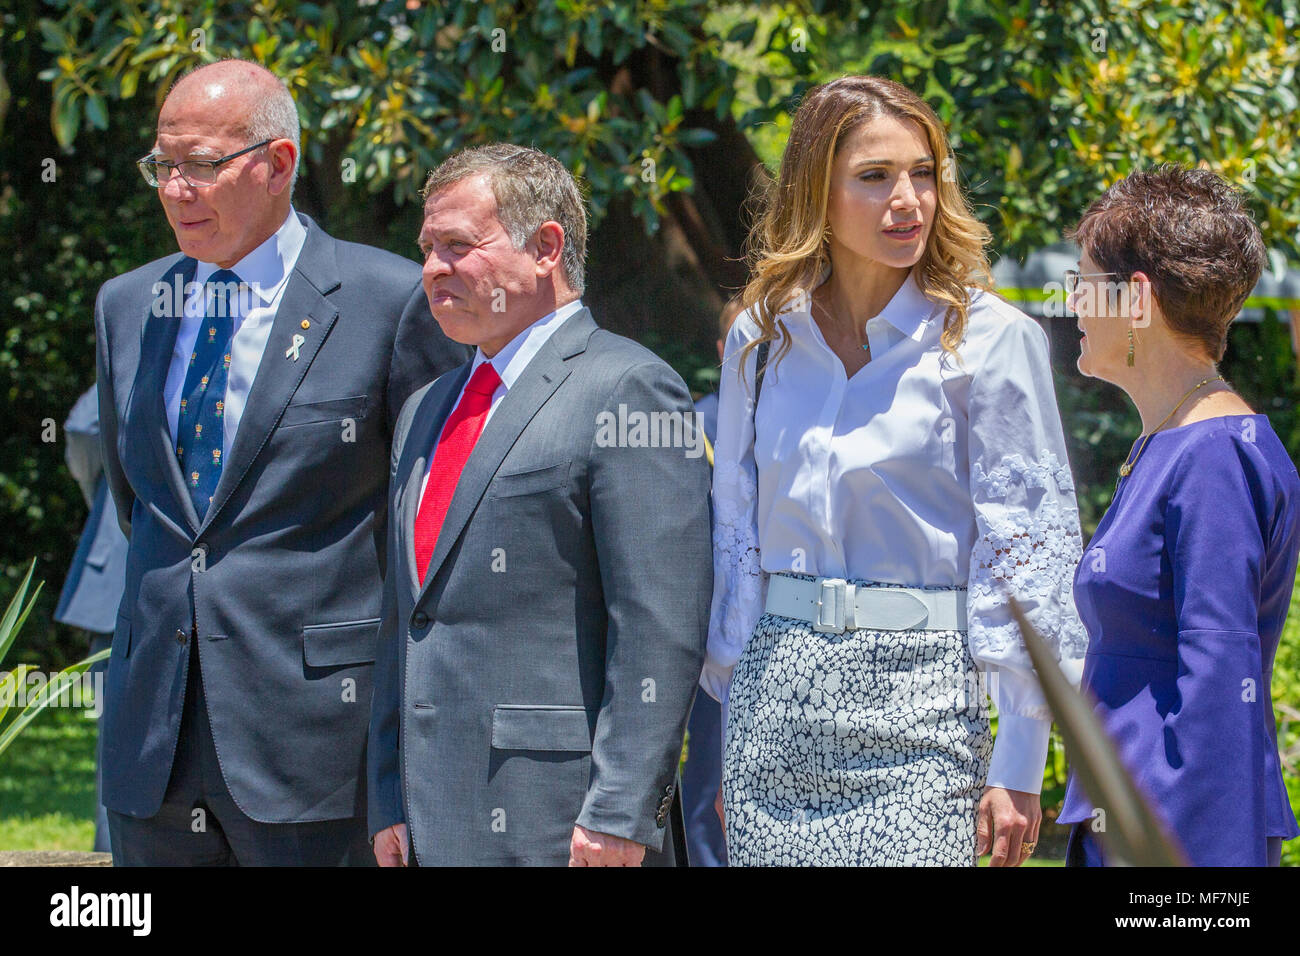 Their Majesties King Abdullah II bin Al-Hussein and Queen Rania Al-Abdullah of Jordan at Government House in Sydney as part of the Royal visit to Australia in November 2016. - Stock Image